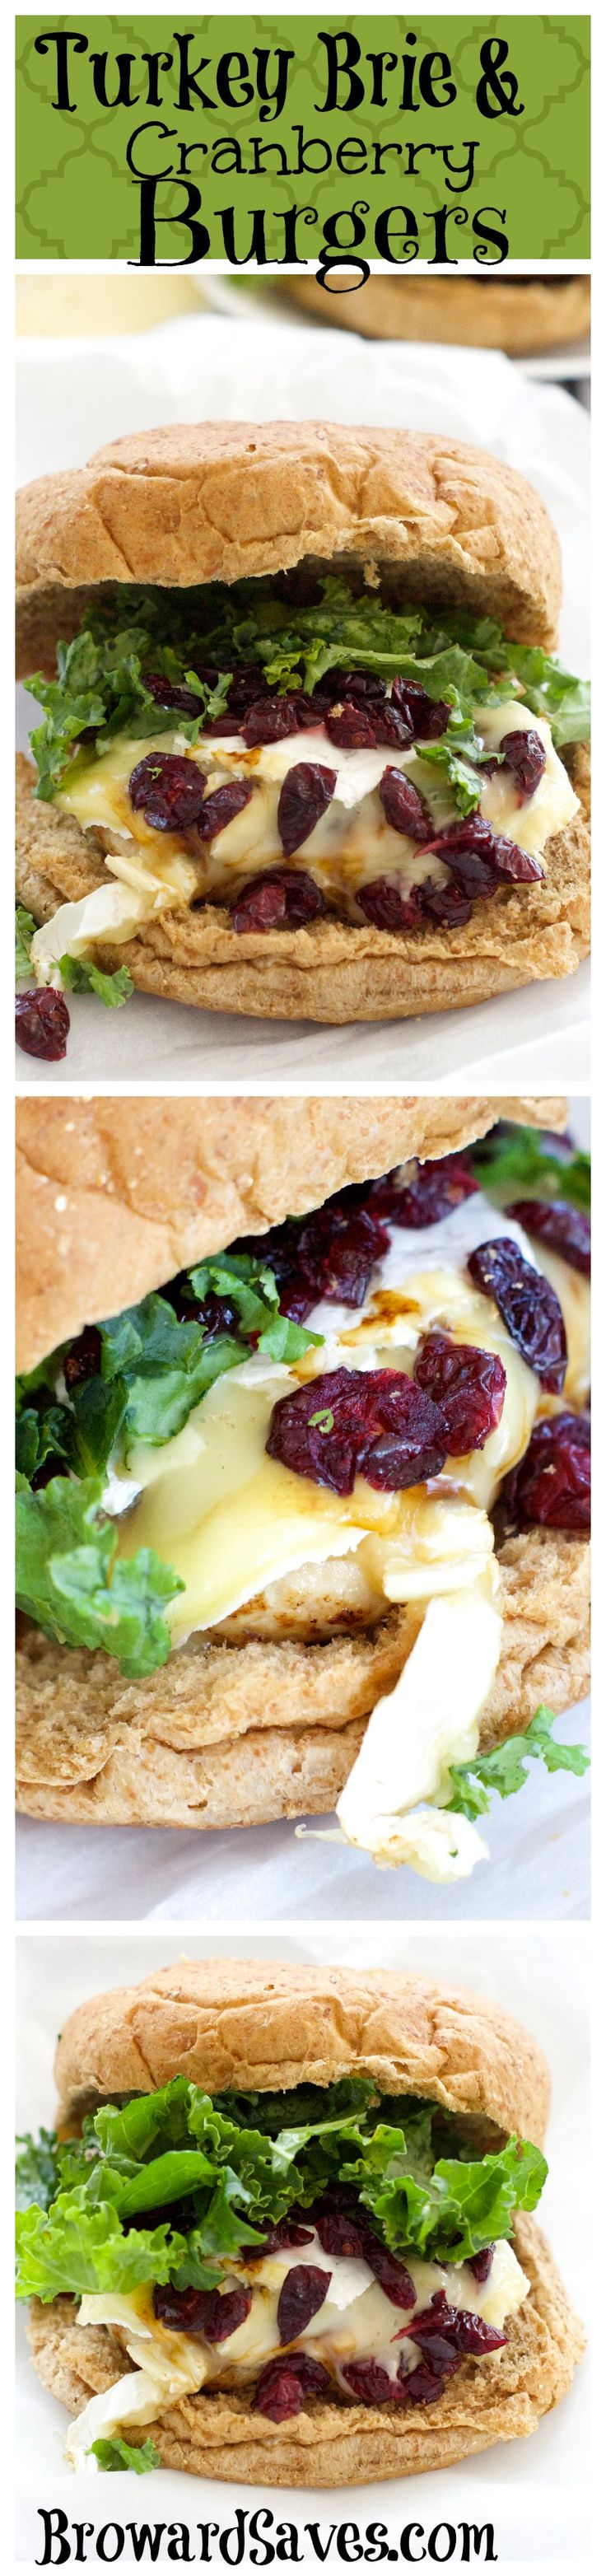 Turkey Brie and Cranberry Burgers - On your table in 15 minutes or less. So easy and delicious to make! Combine the robust turkey patty with the creaminess of the brie alongside the pepperiness of the Kale and the sweetness of the Cranberries. Yumm!